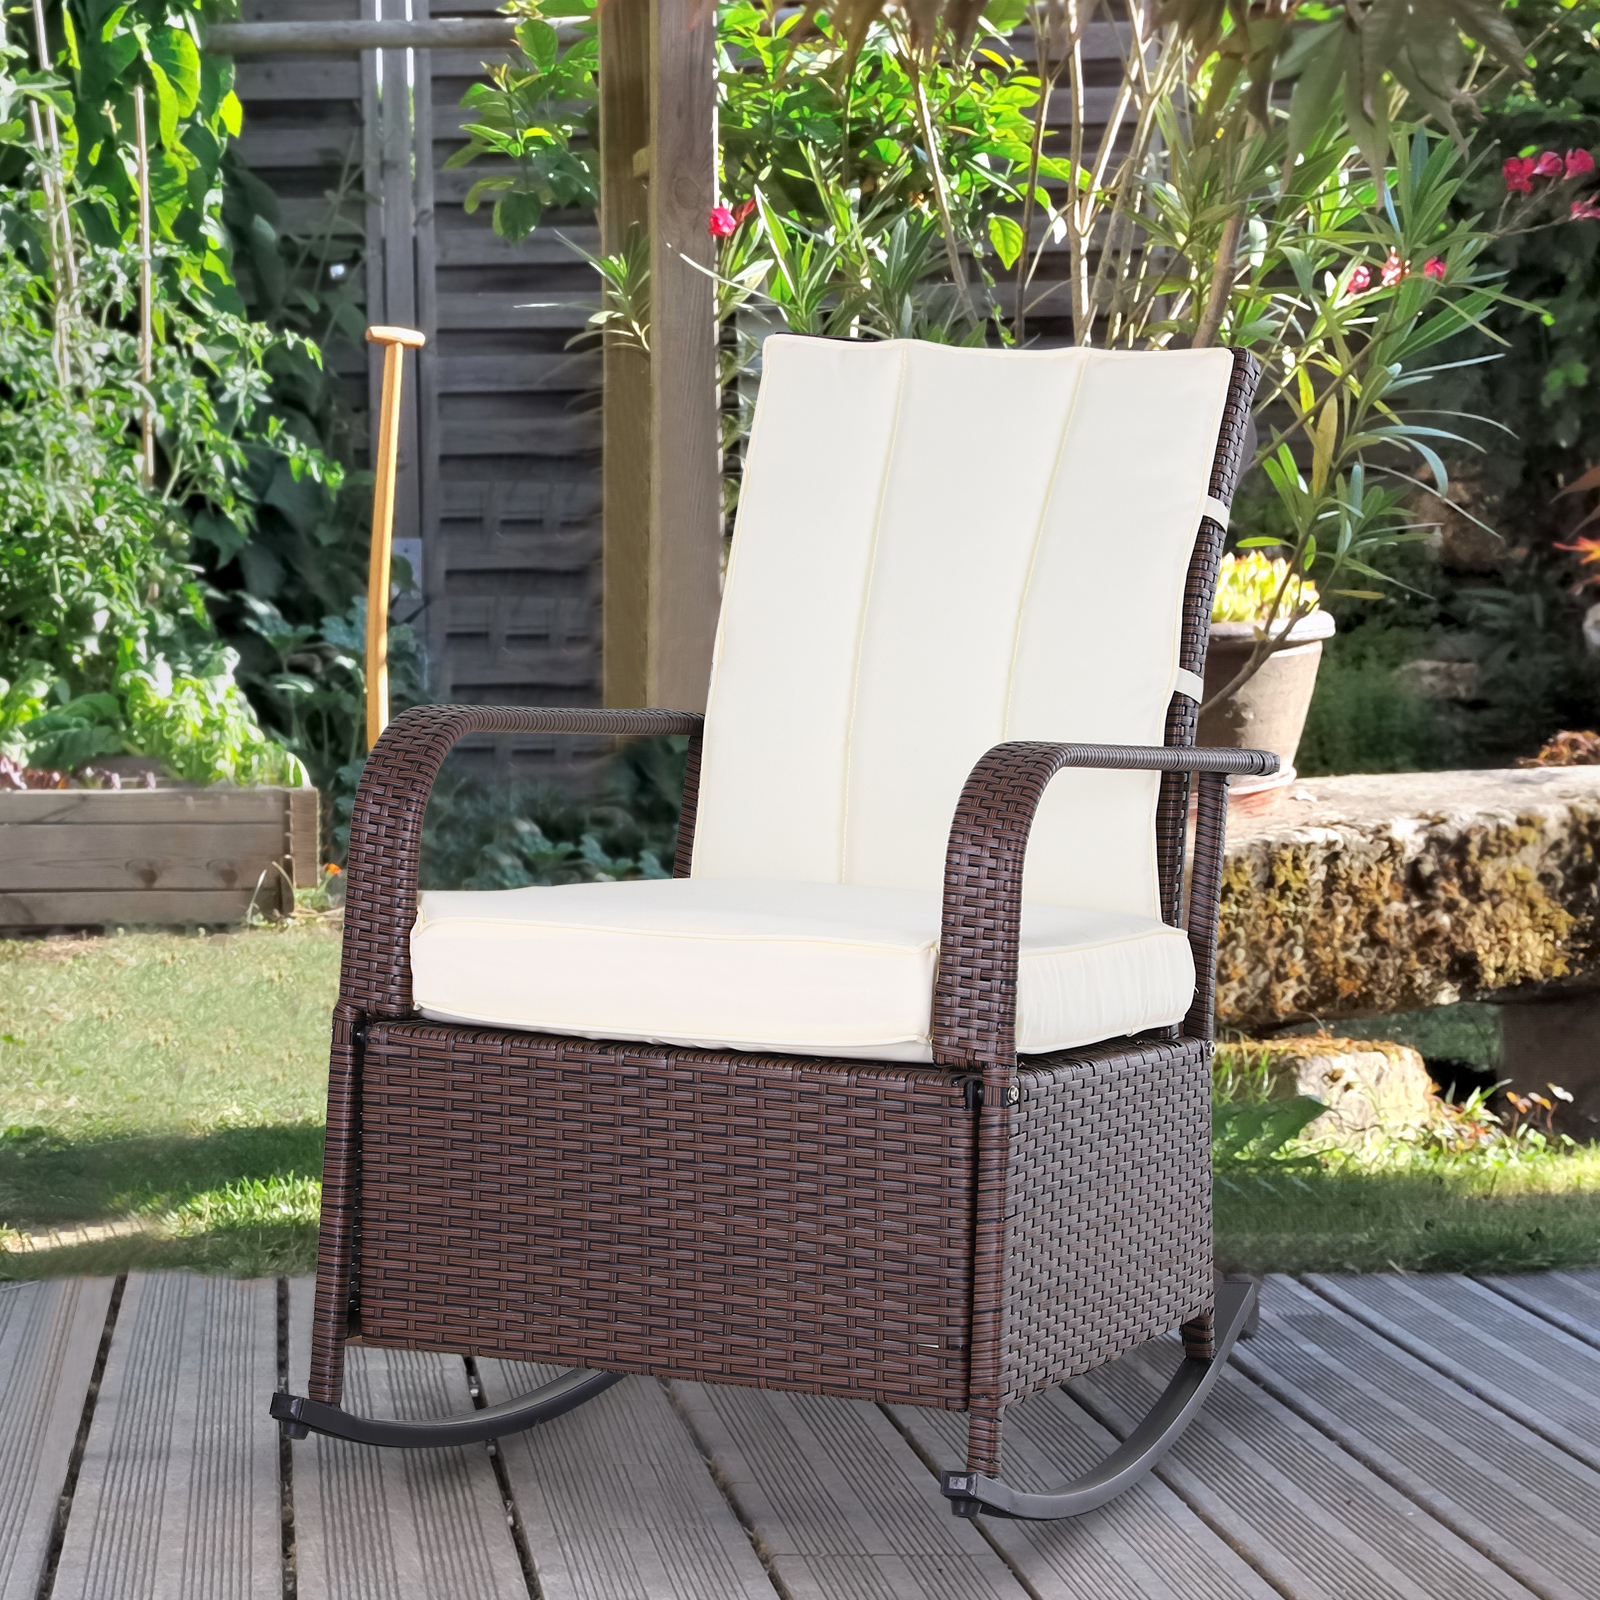 Details about Outsunny Outdoor Wicker Rattan Recline Rocking Cushioned Chair w Footrest White